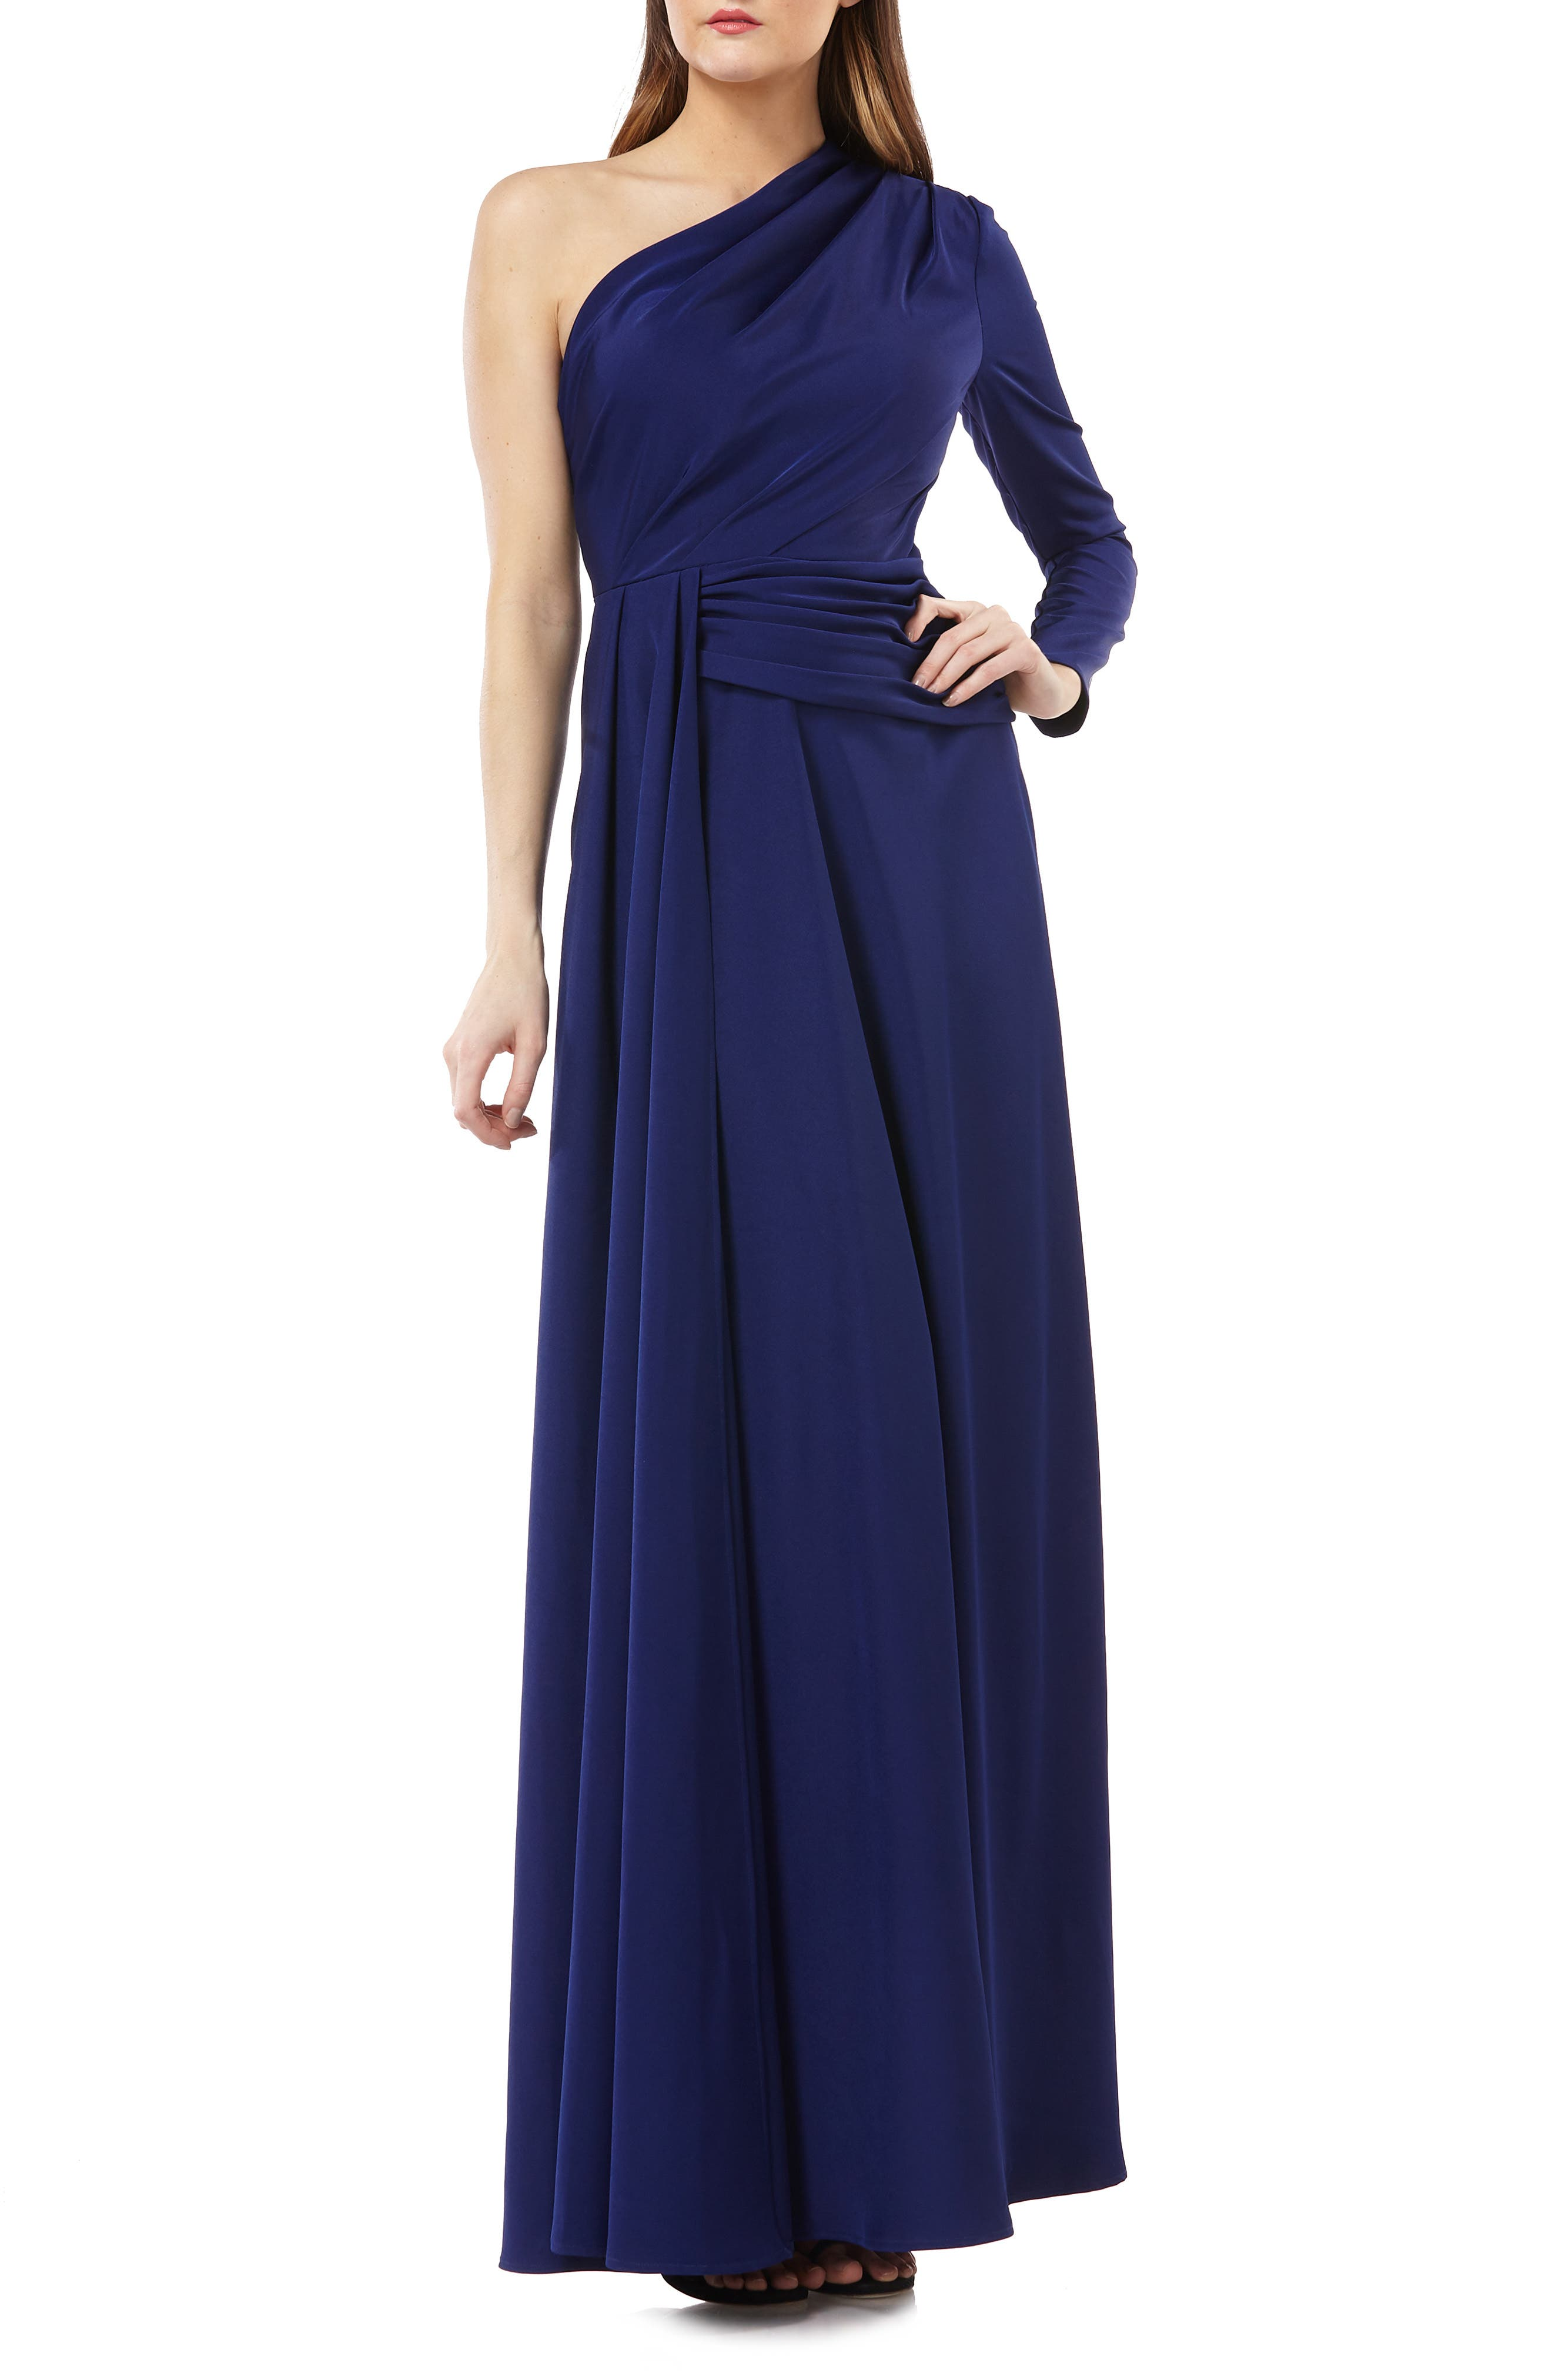 KAY UNGER One-Shoulder Gown W/ Draped Sash in Navy